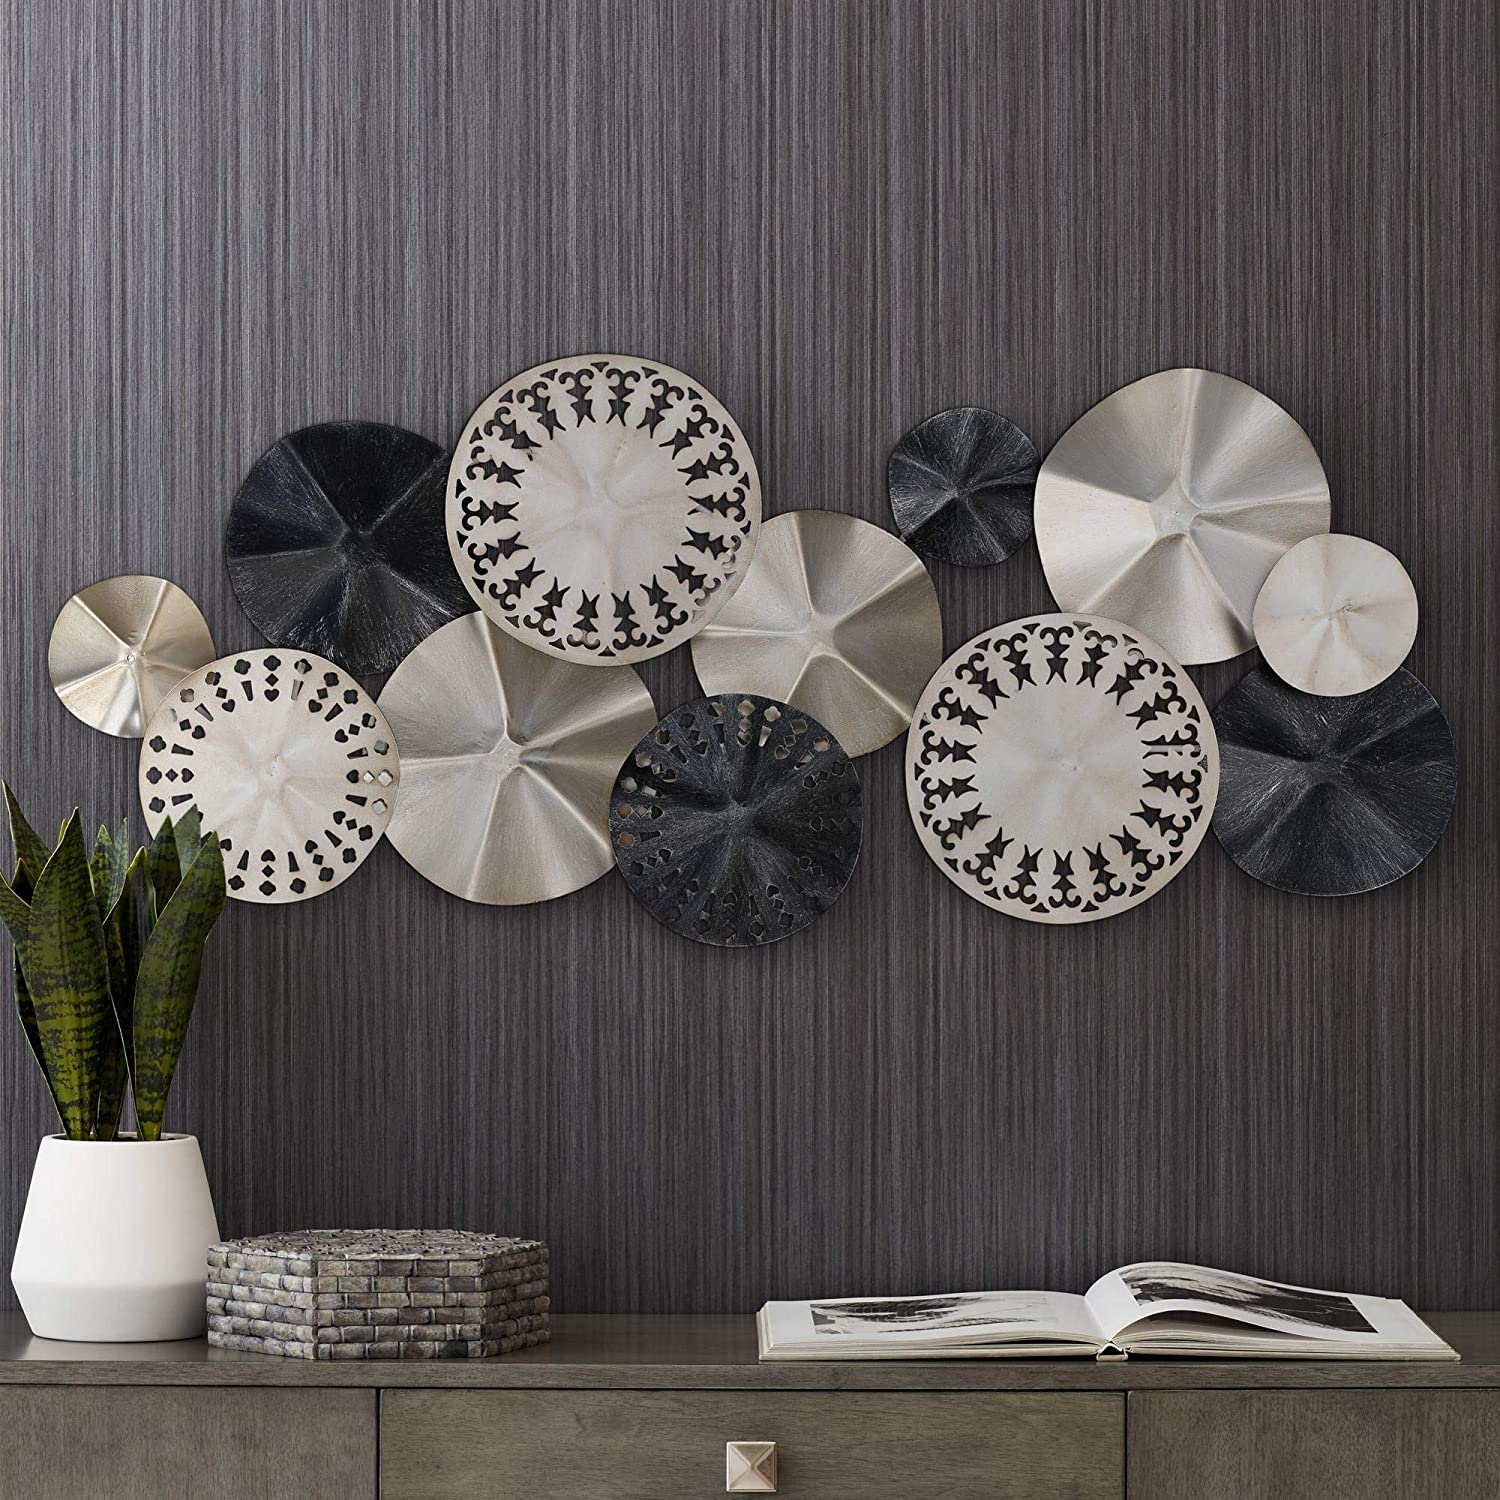 Newhill Designs Abstract Modern Discs 41 1/4